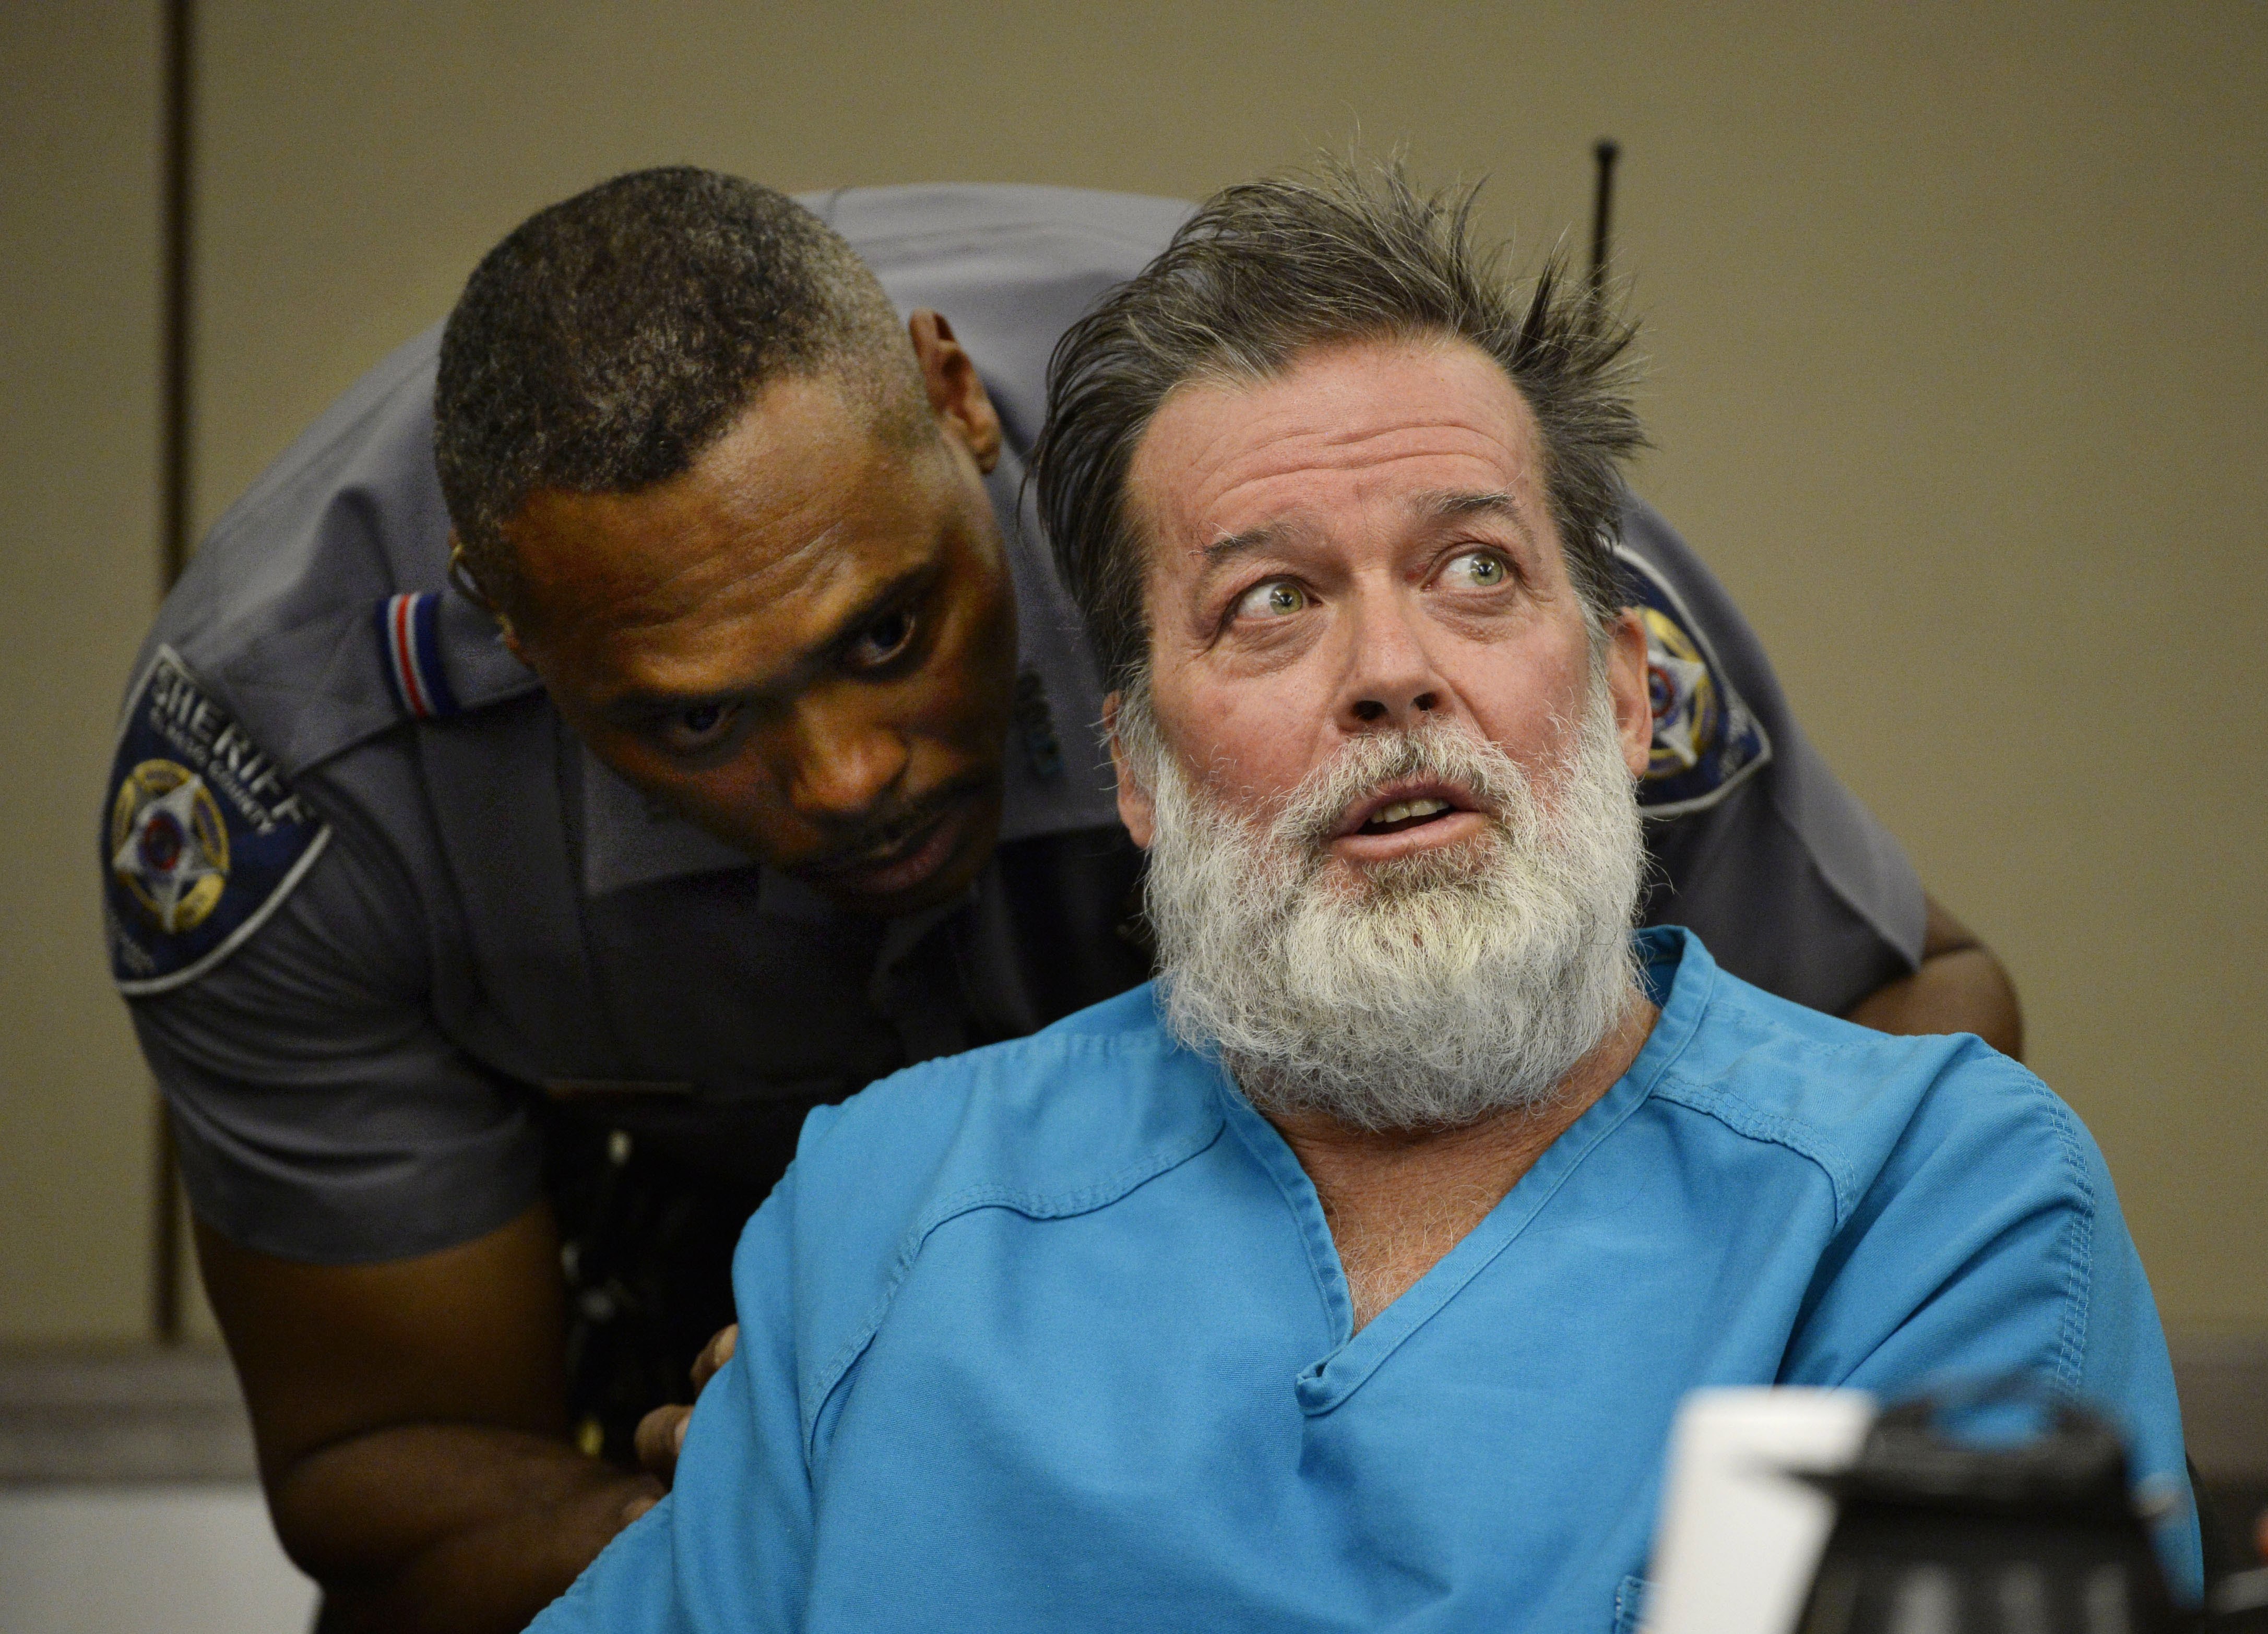 An El Paso County Sheriff's deputy talks to Robert Lewis Dear during a court appearance on Wednesday, Dec. 9, 2015, in Colorado Springs.